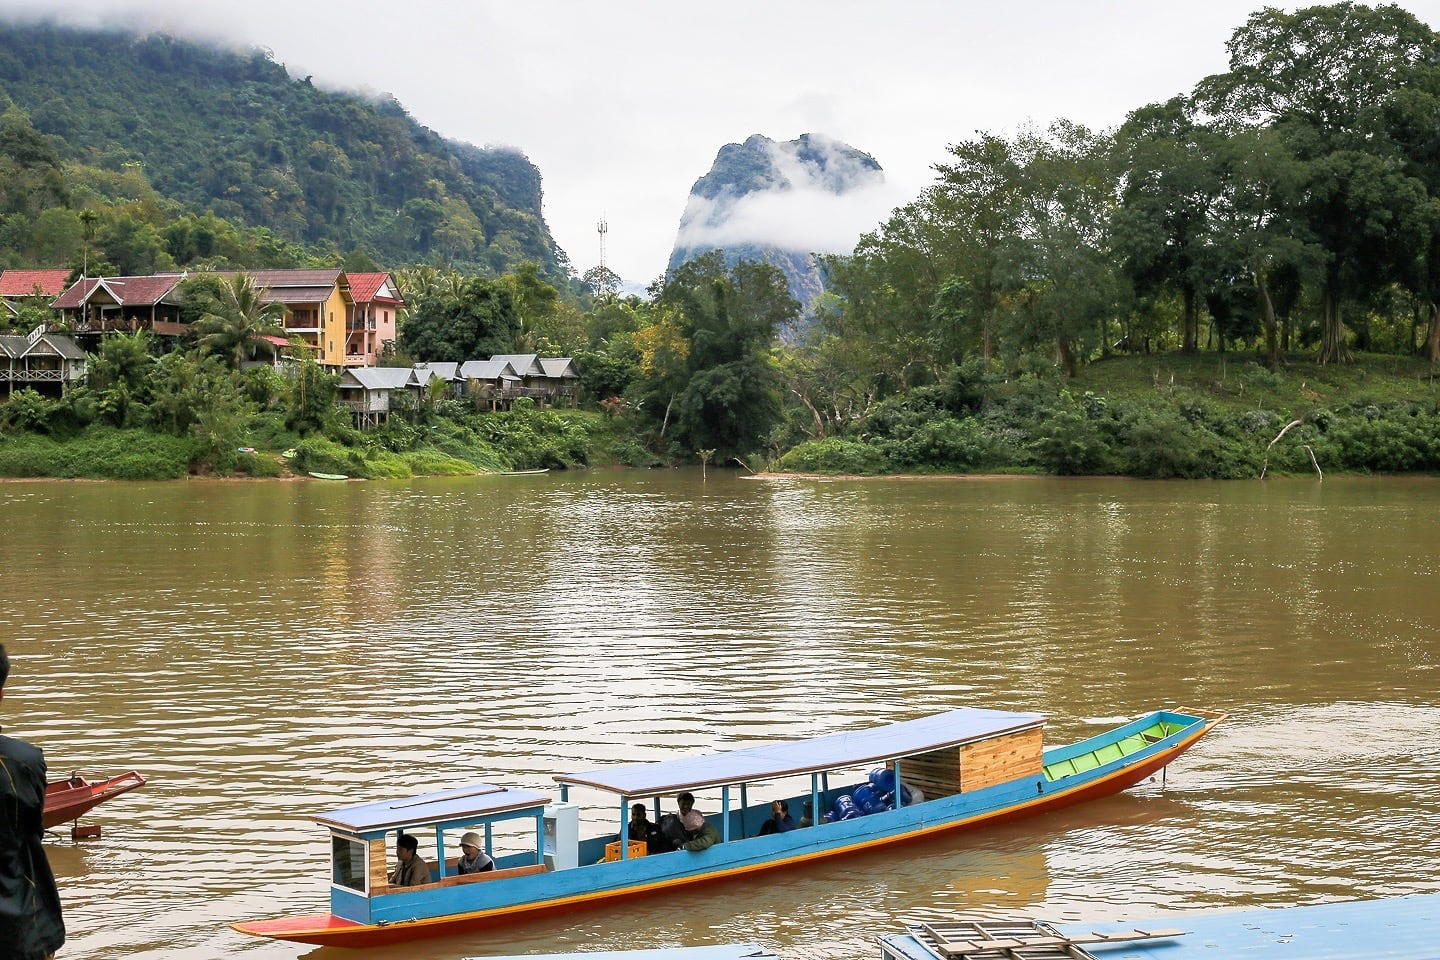 ou river boat trip start point in nong khiaw